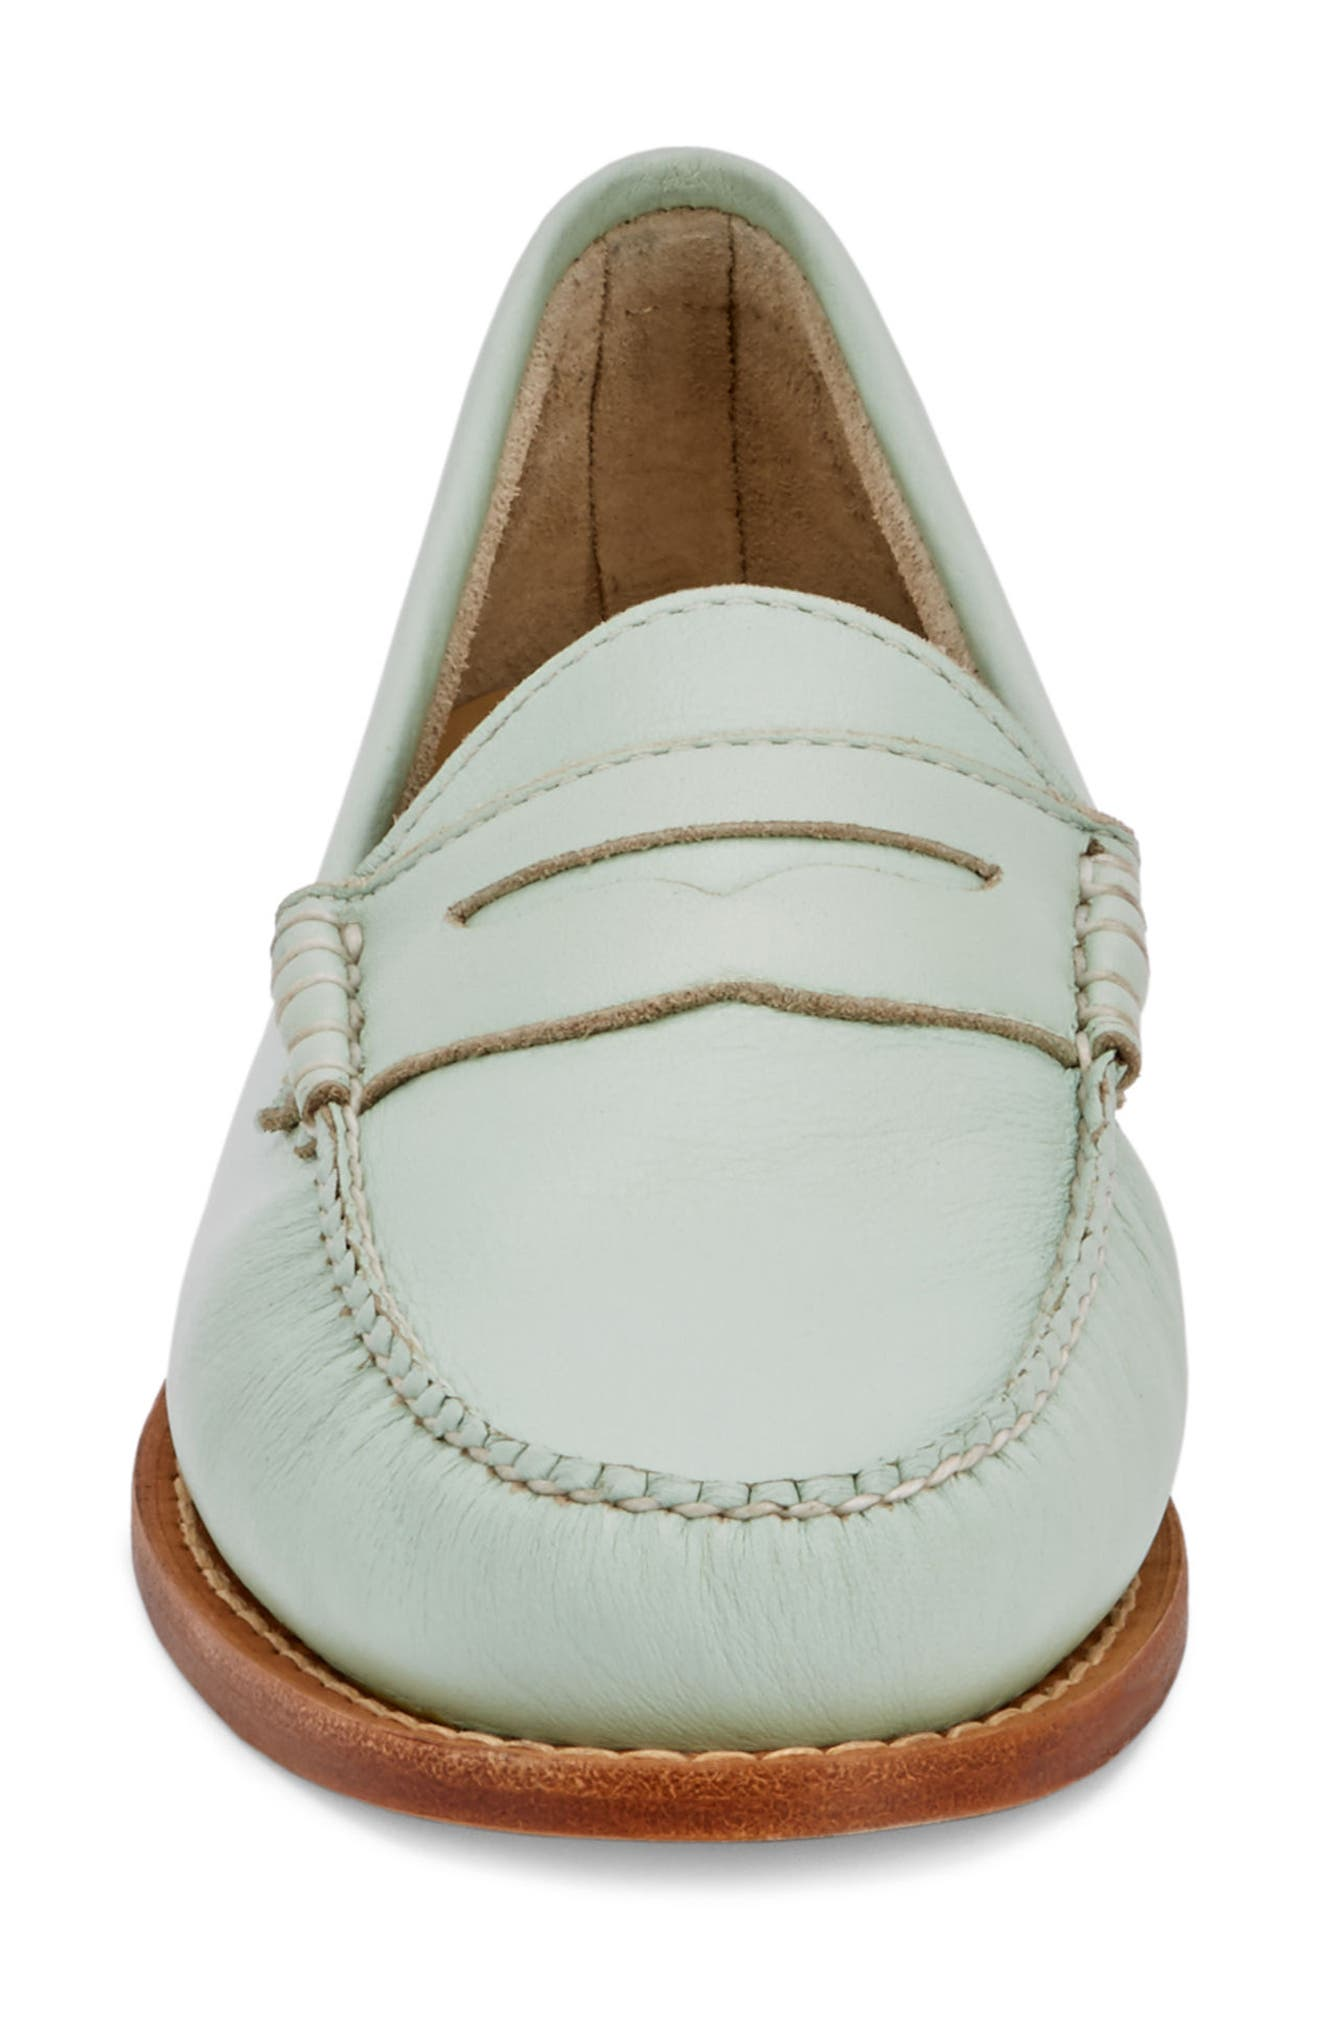 'Whitney' Loafer,                             Alternate thumbnail 4, color,                             MINT GREEN LEATHER